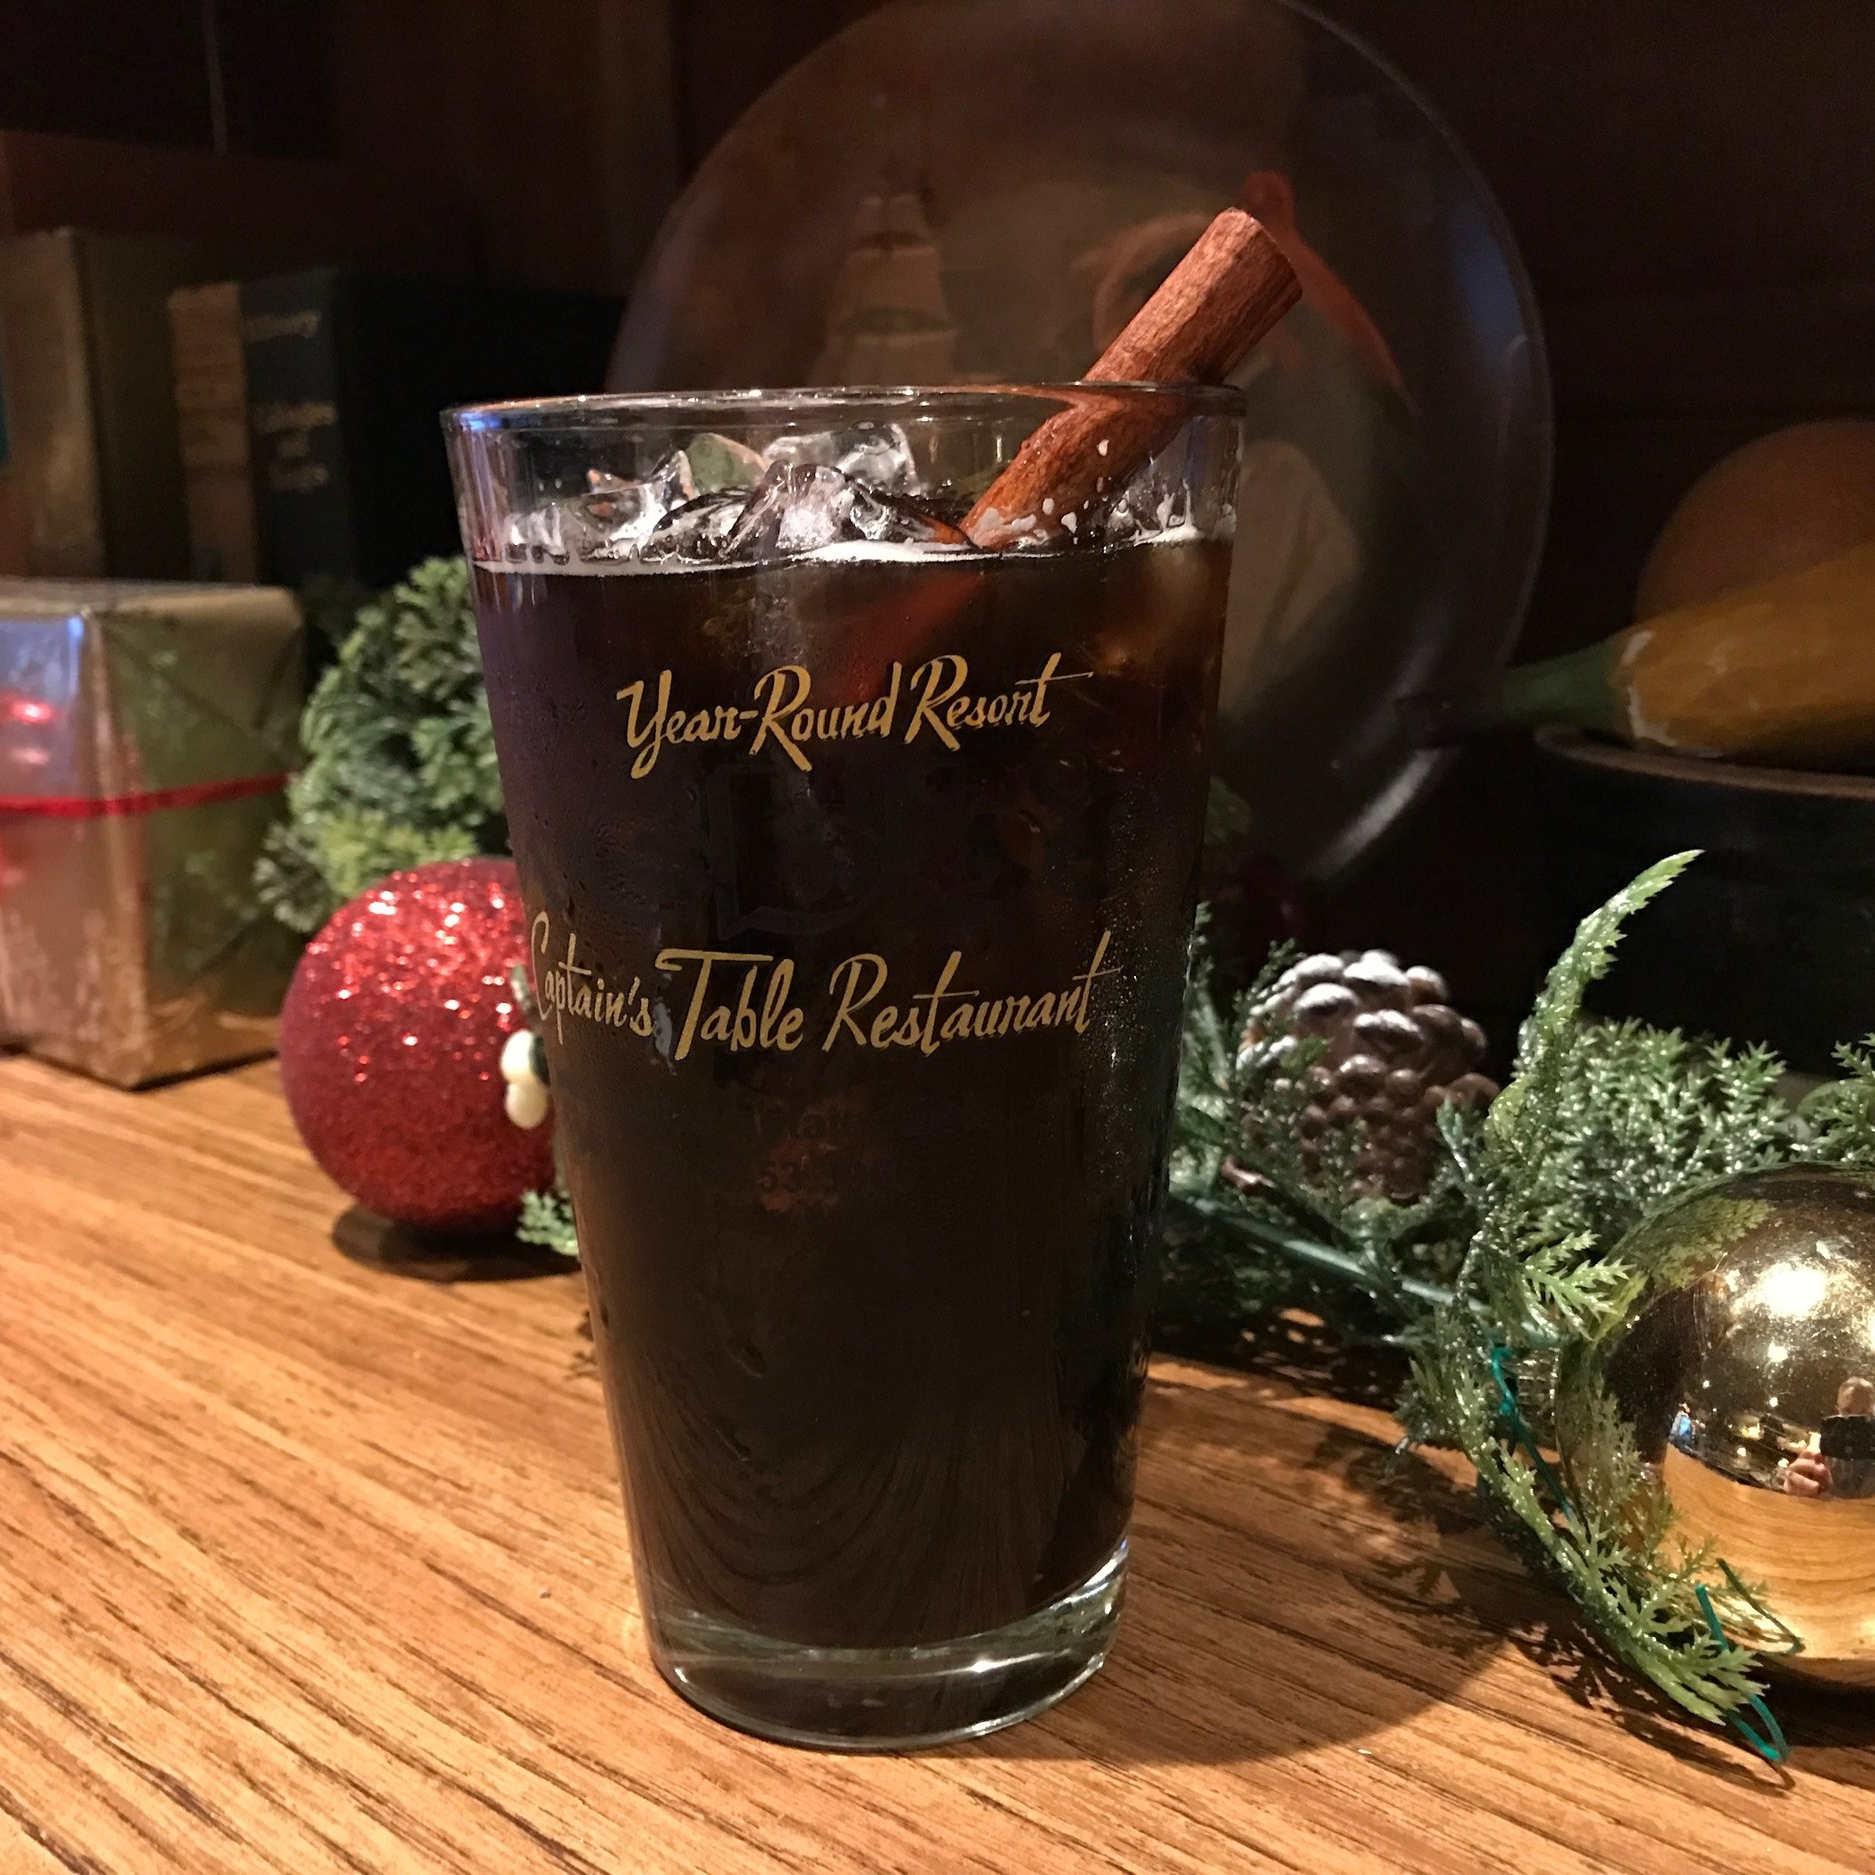 SPICED CHOCOLATE STOUT  Brandy, spicy simple syrup with ground red pepper and cinnamon, Southern Tier Brewing Co. Chokolat served in a pint glass and garnished with a fresh cinnamon stick.